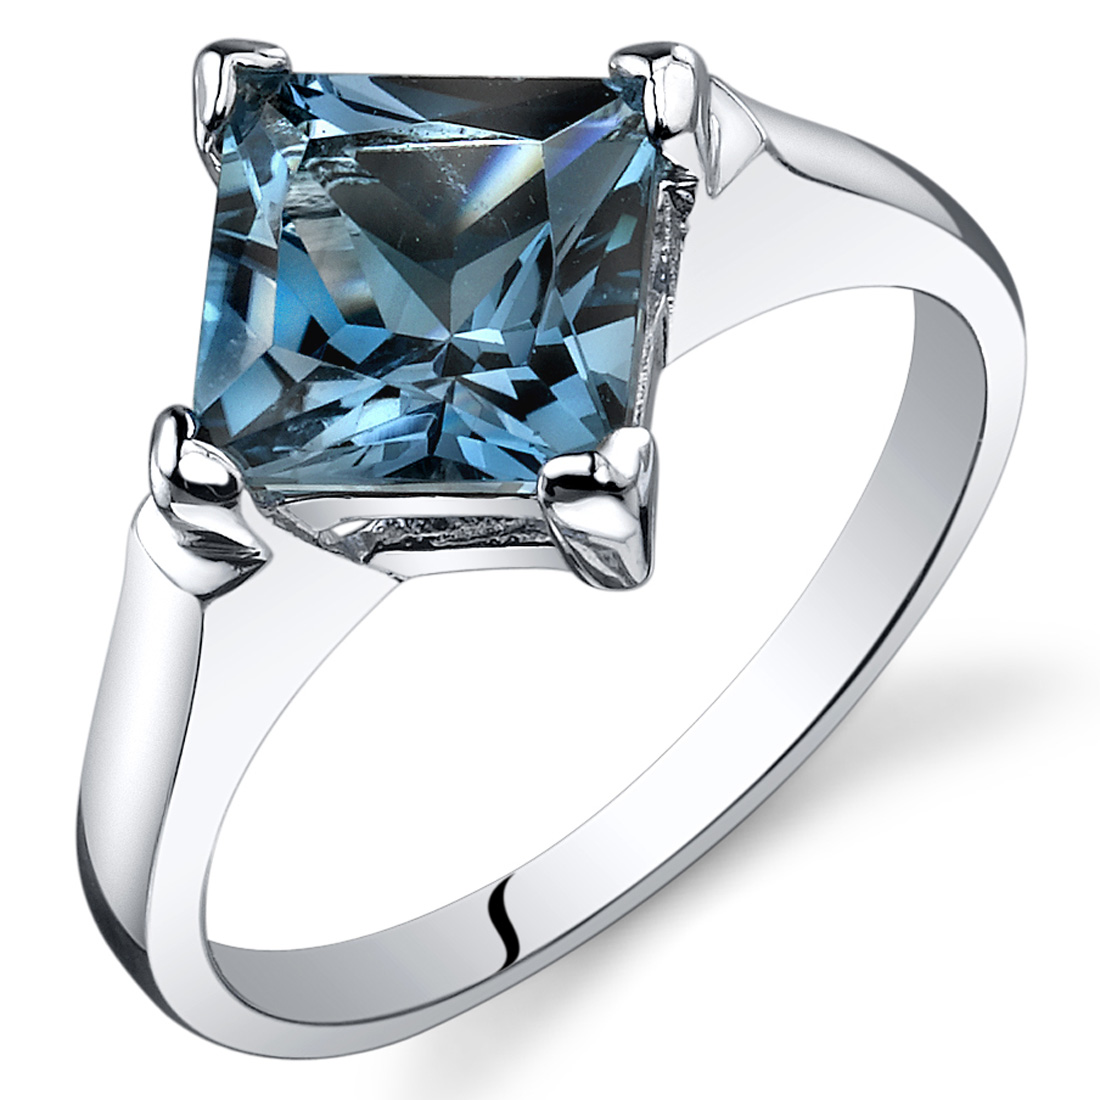 Peora 2.00 Ct London Blue Topaz Engagement Ring in Rhodium-Plated Sterling Silver